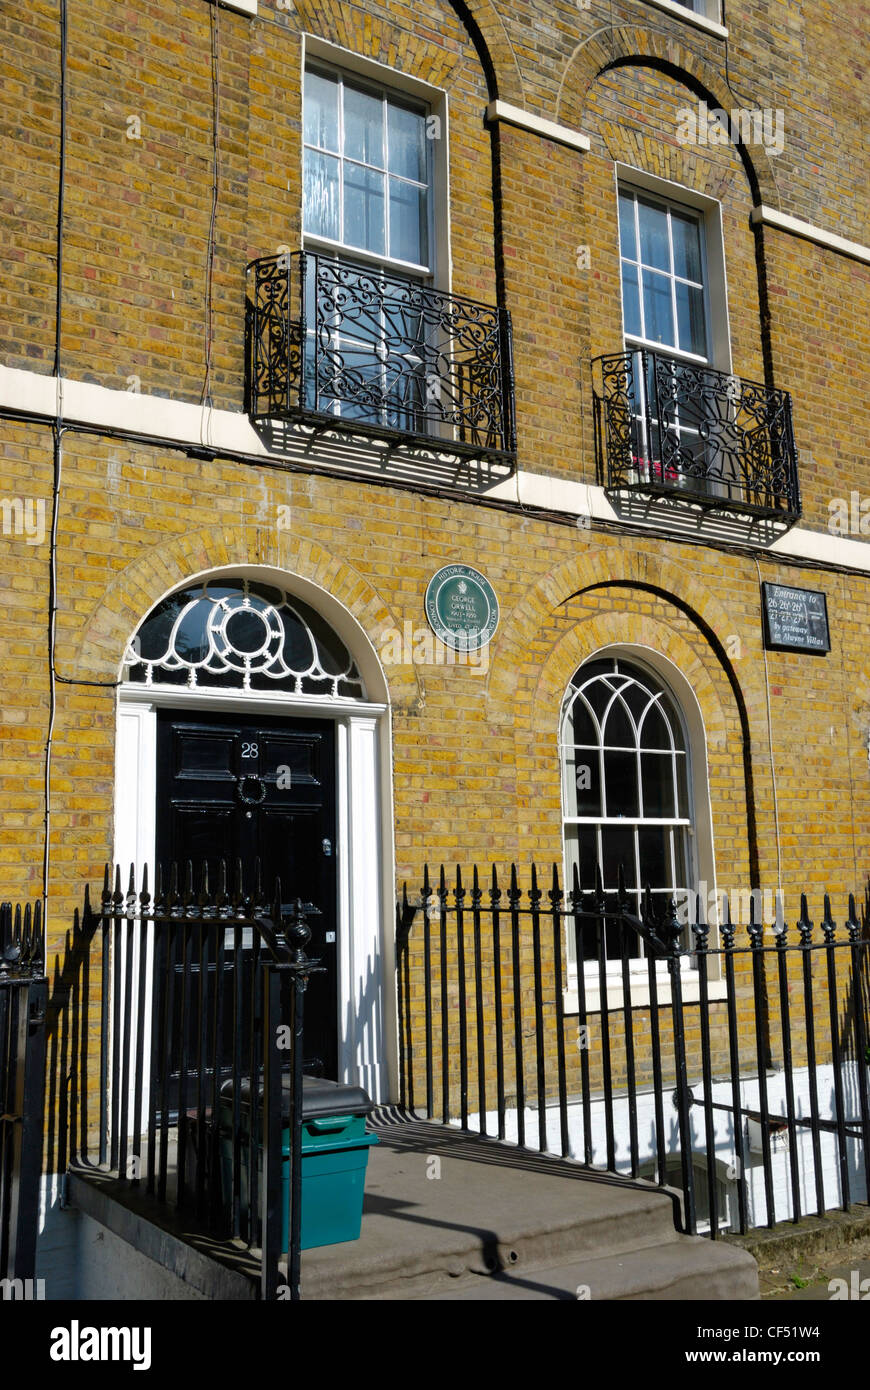 Site of the former home of George Orwell who lived at 27B Canonbury Square. - Stock Image